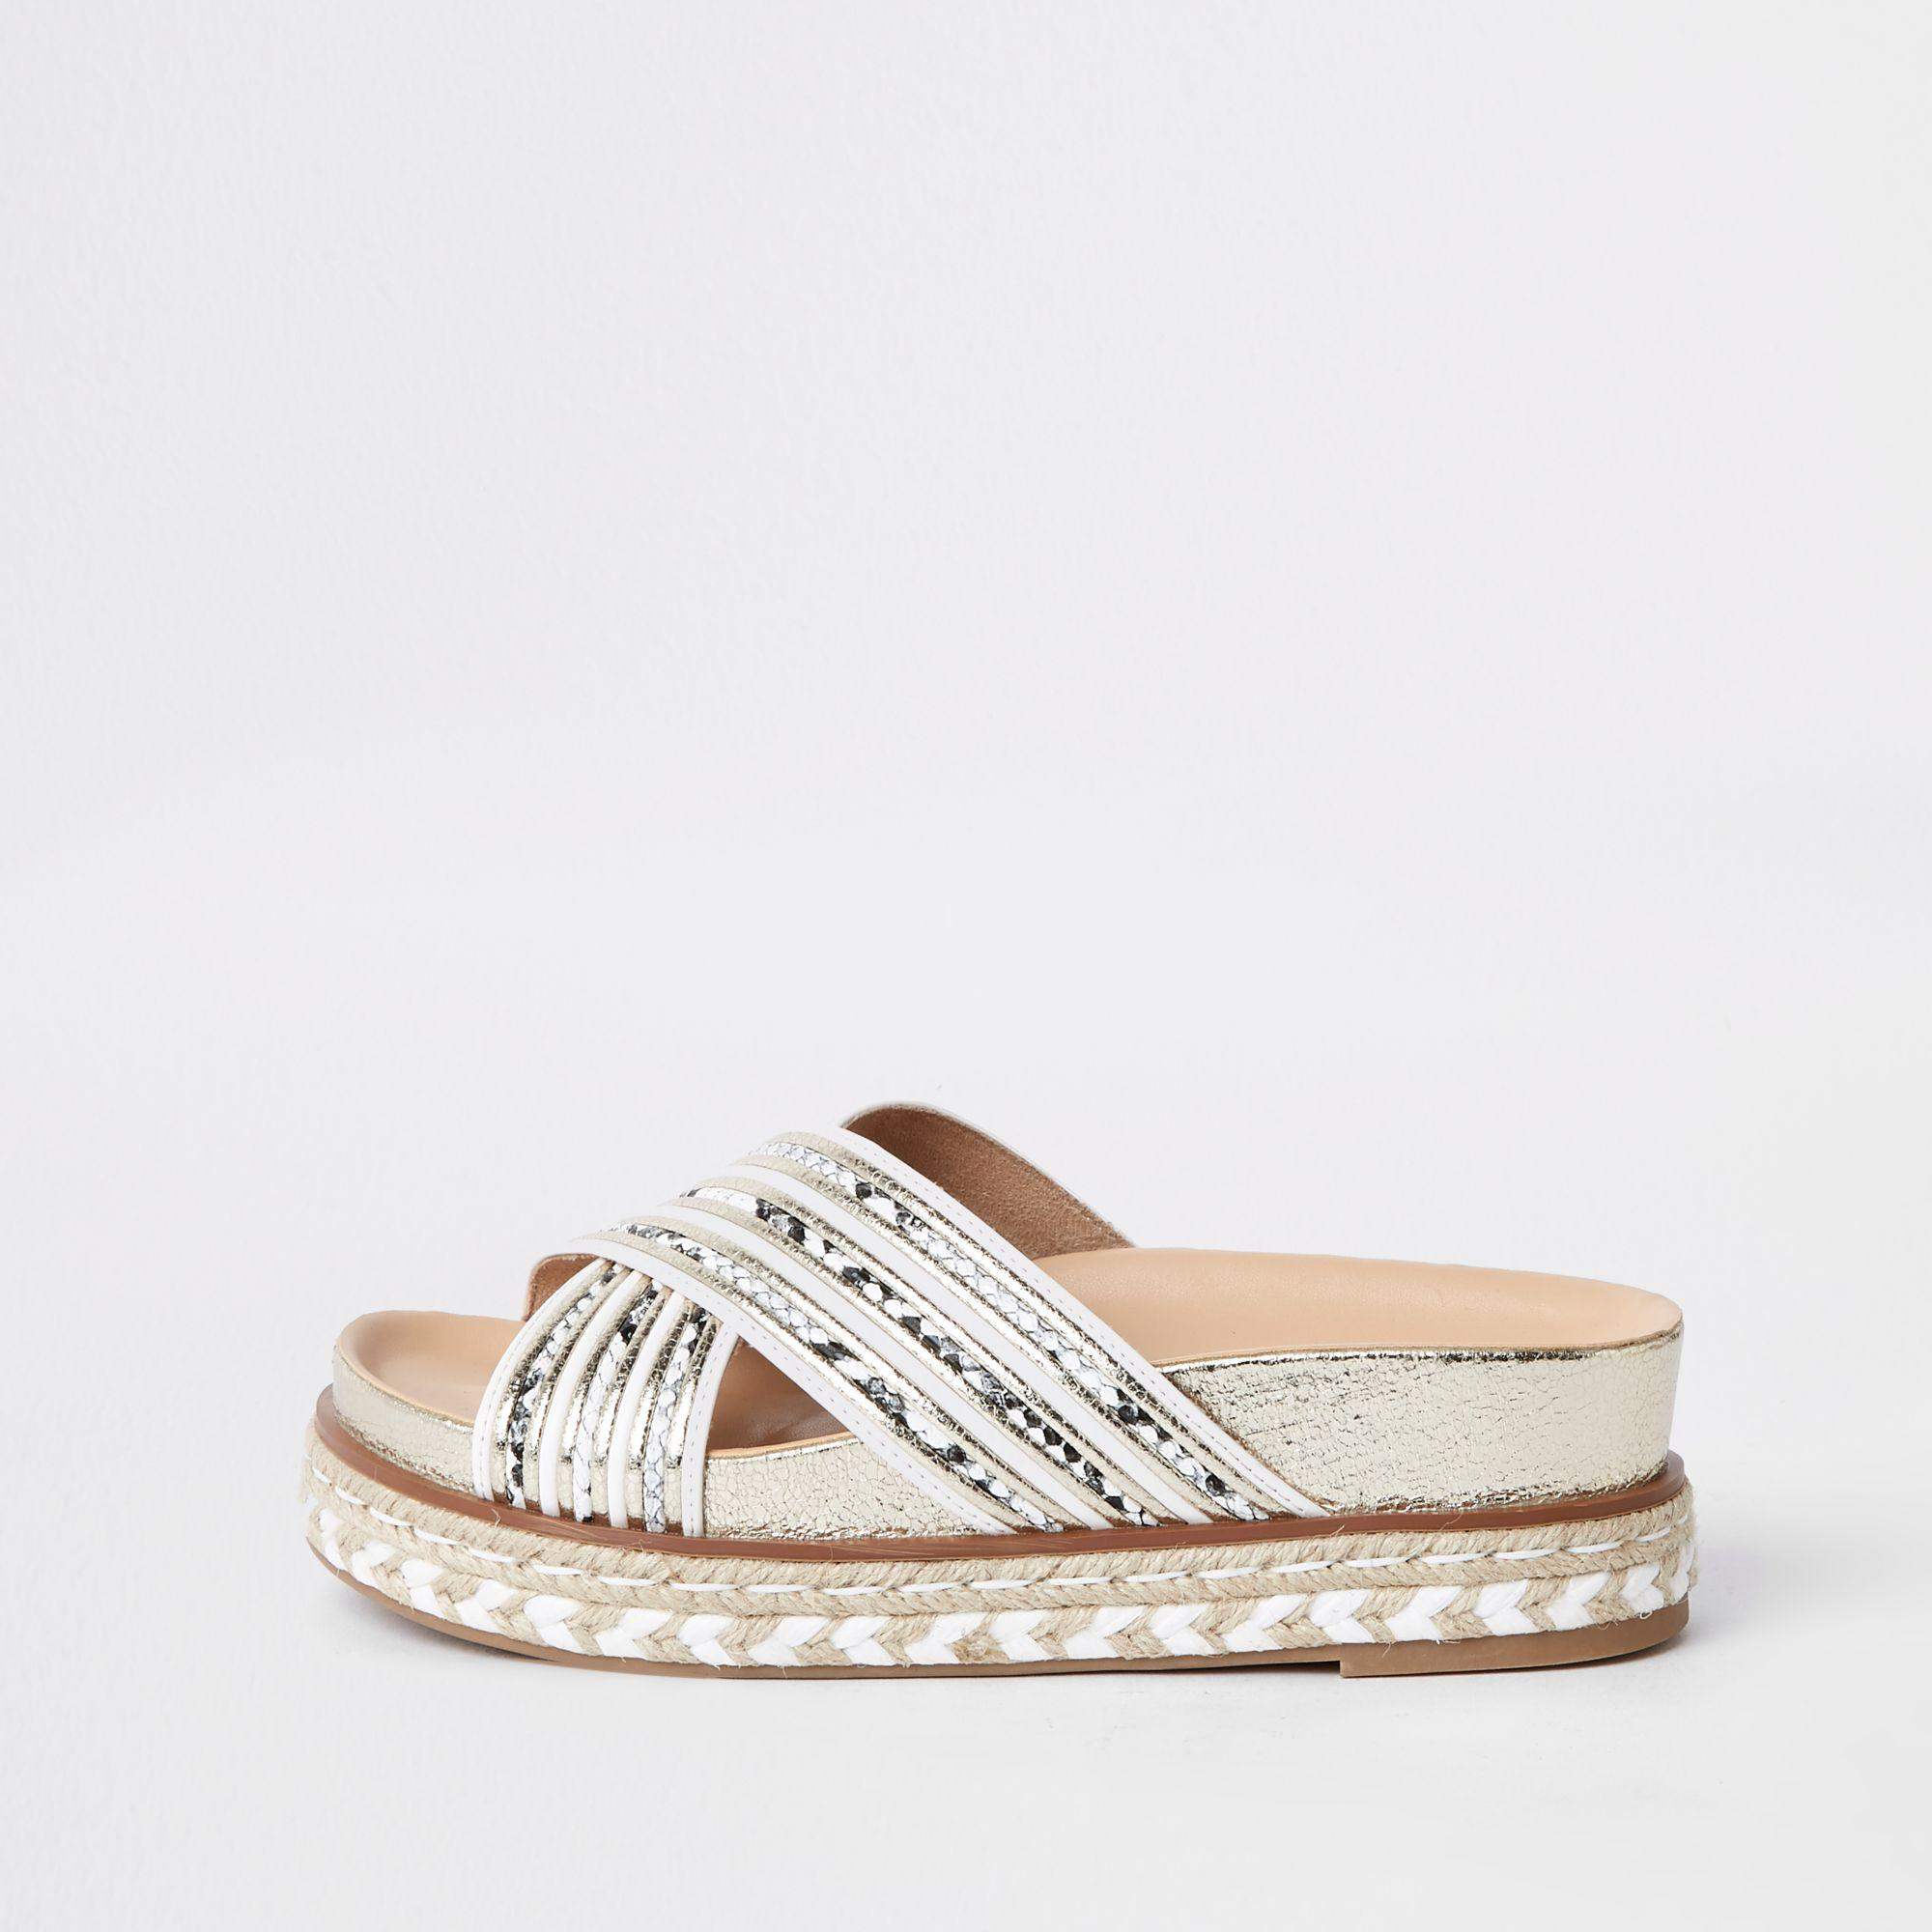 869f5ea6077 Lyst - River Island White Cross Strap Espadrille Platform Sandals in ...